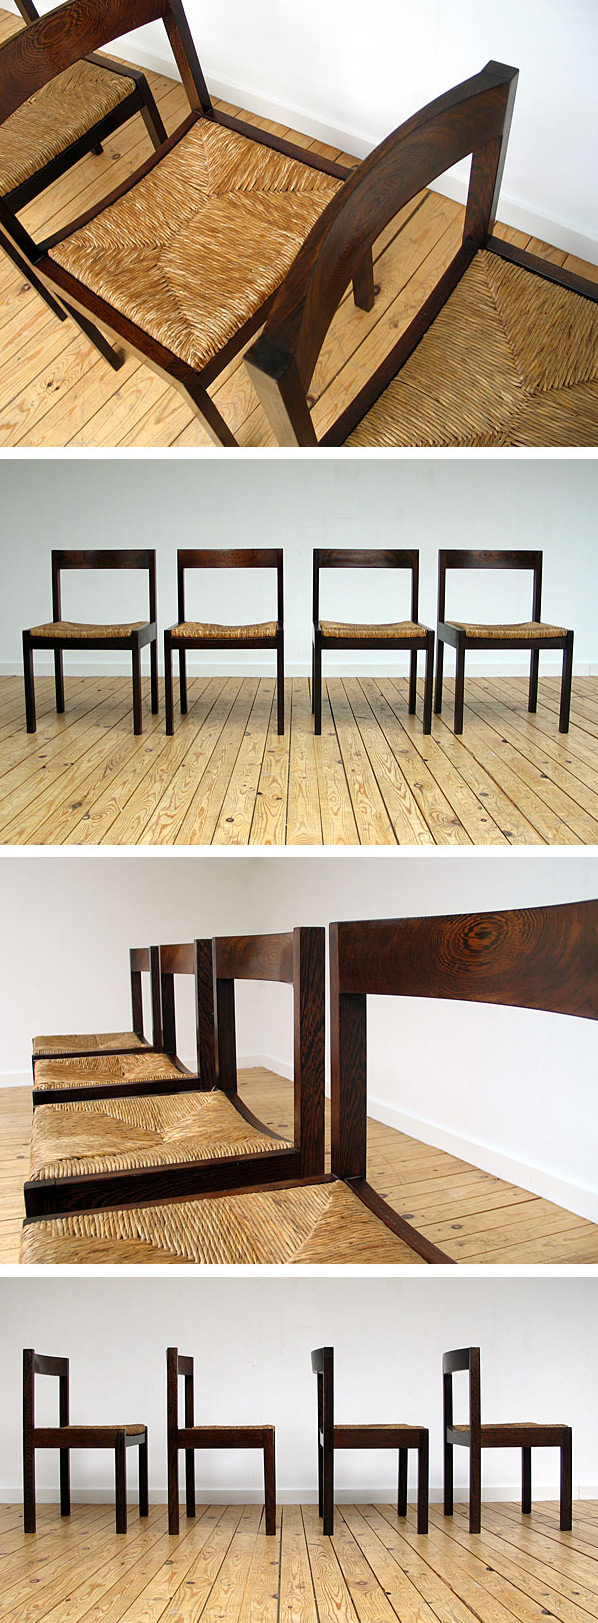 4 Martin Visser Dinning chairs in Wenge wood for Spectrum Large